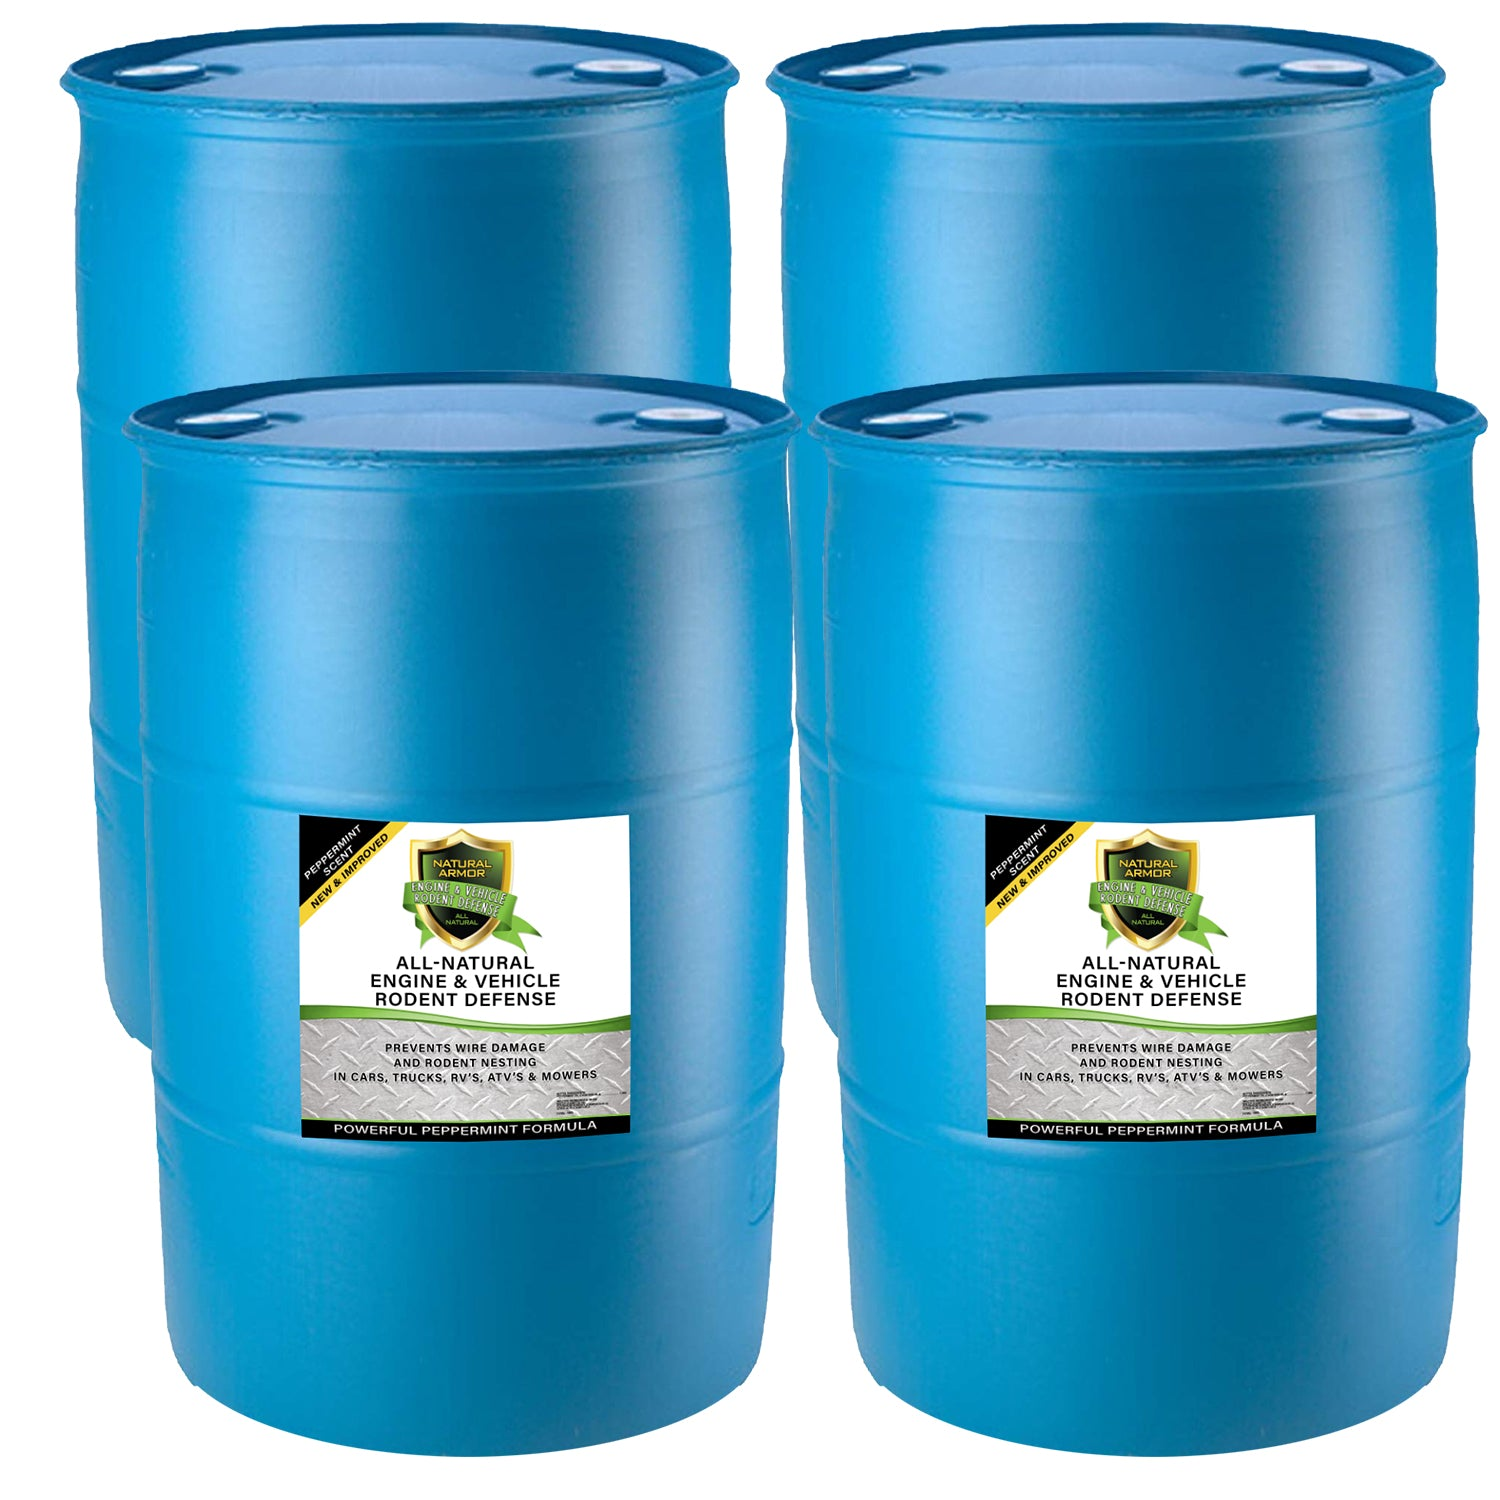 All-Natural Vehicle & Engine Protection - (4) 55 GALLON DRUMS